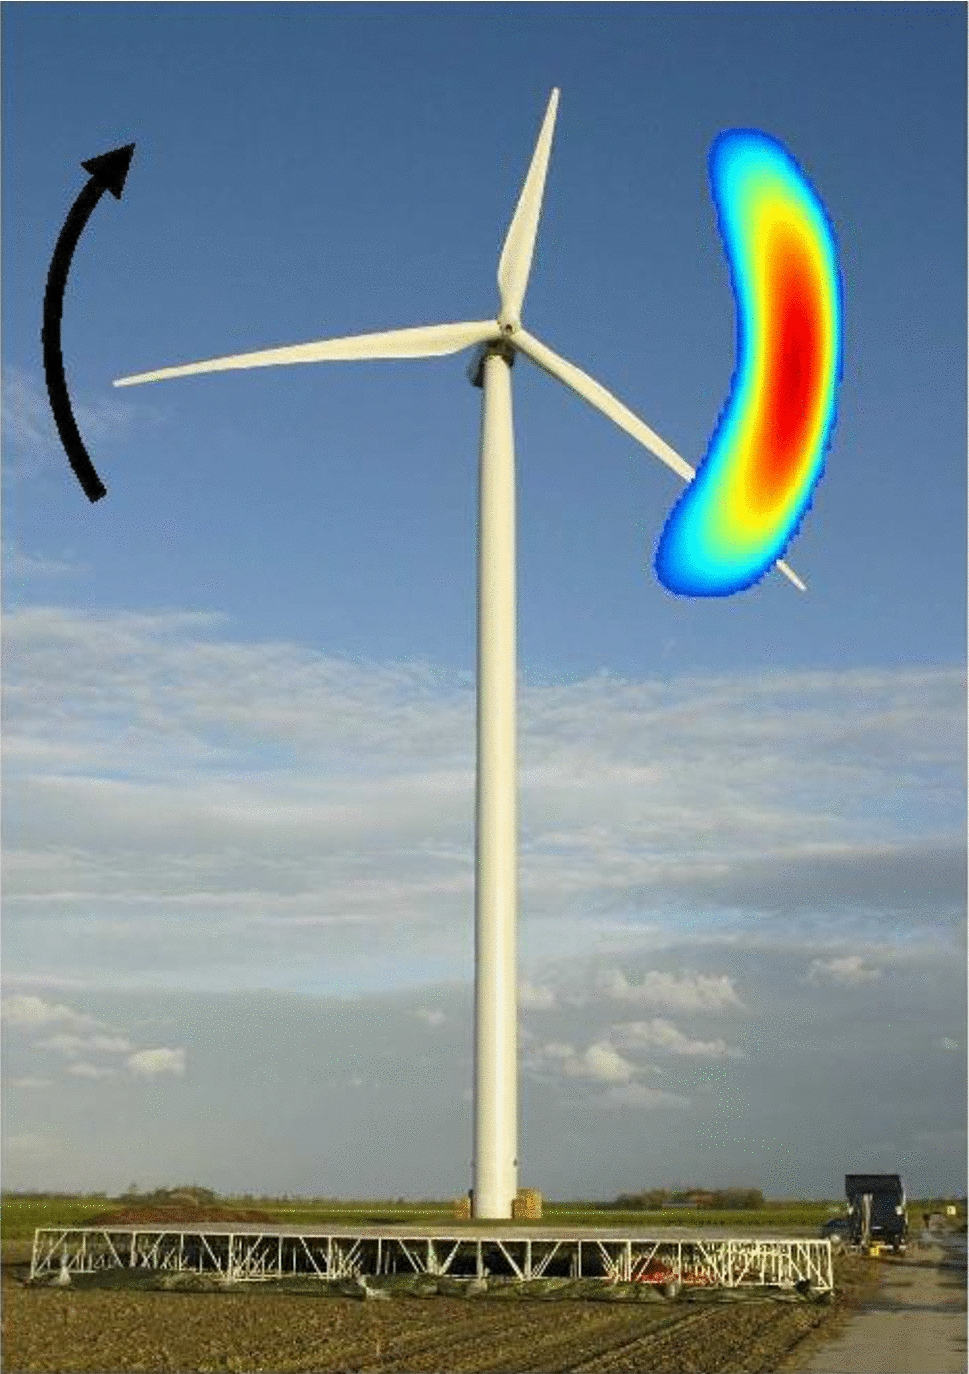 A Review of Wind Turbine-Generated Infrasound: Source, Measurement